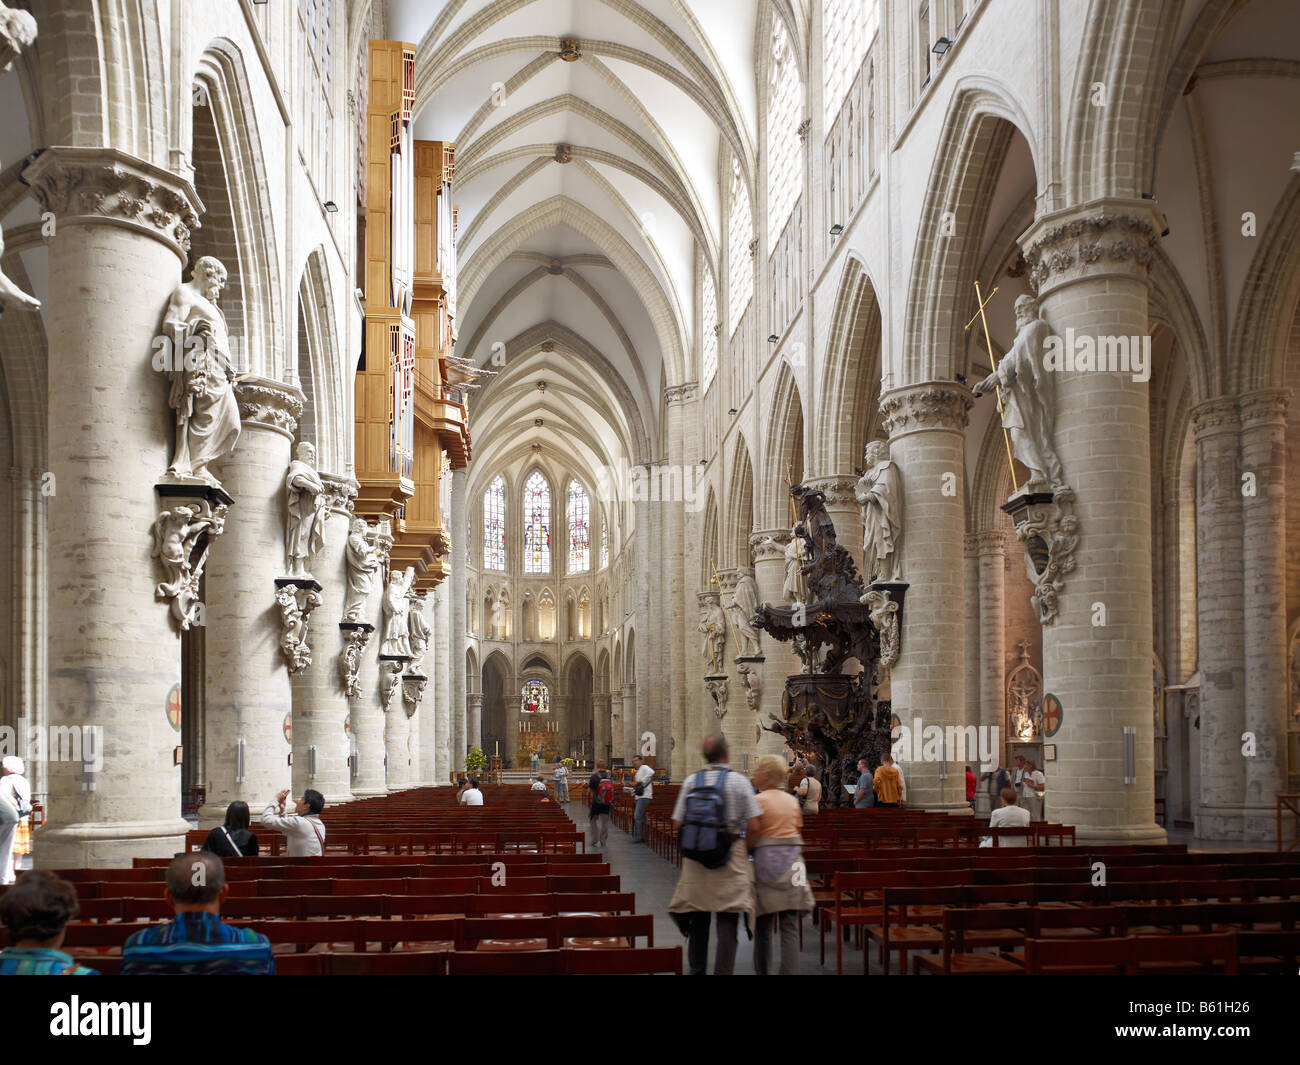 interior shot of Cathedral of St Michel Brussels Brabant Belgium - Stock Image